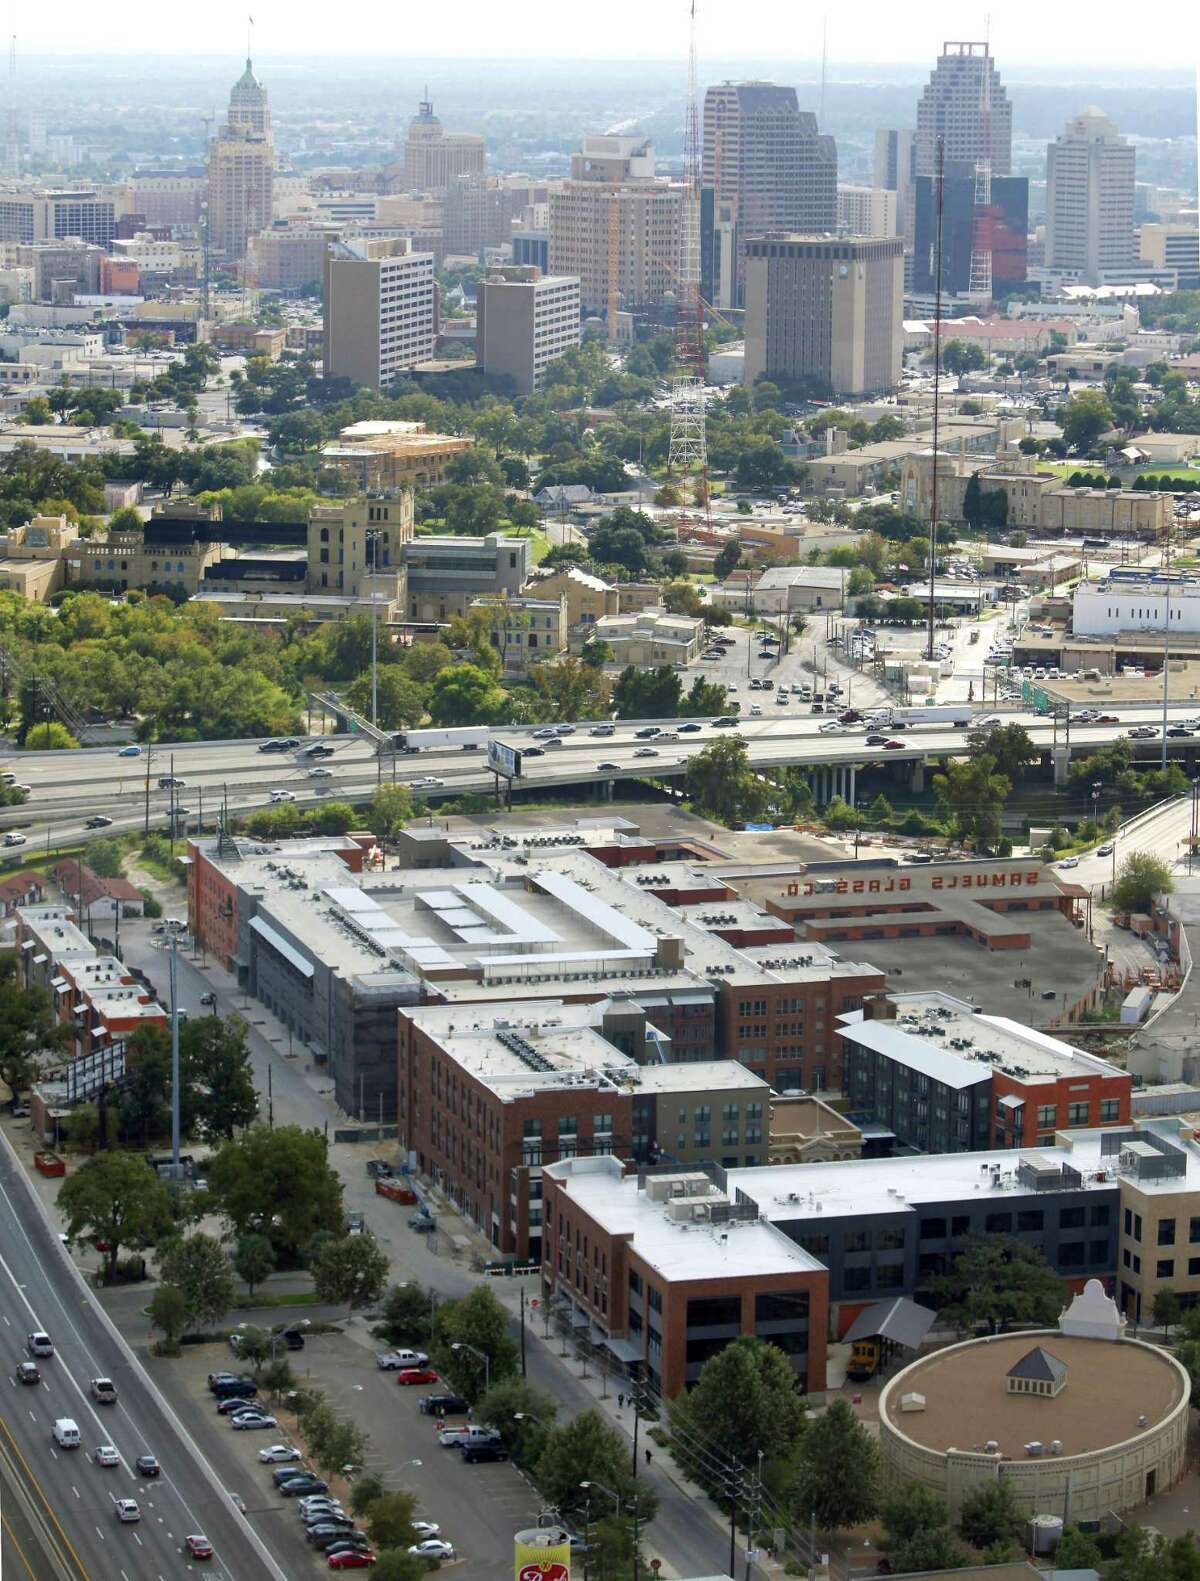 The Can Plant apartment complex at the Pearl is seen in the foreground of this 2012 aerial photo. This year's municipal bond measures contains improvements to the Broadway corridor. In fact, downtown improvements generally constitute 21 percent of the bond fund proposed.